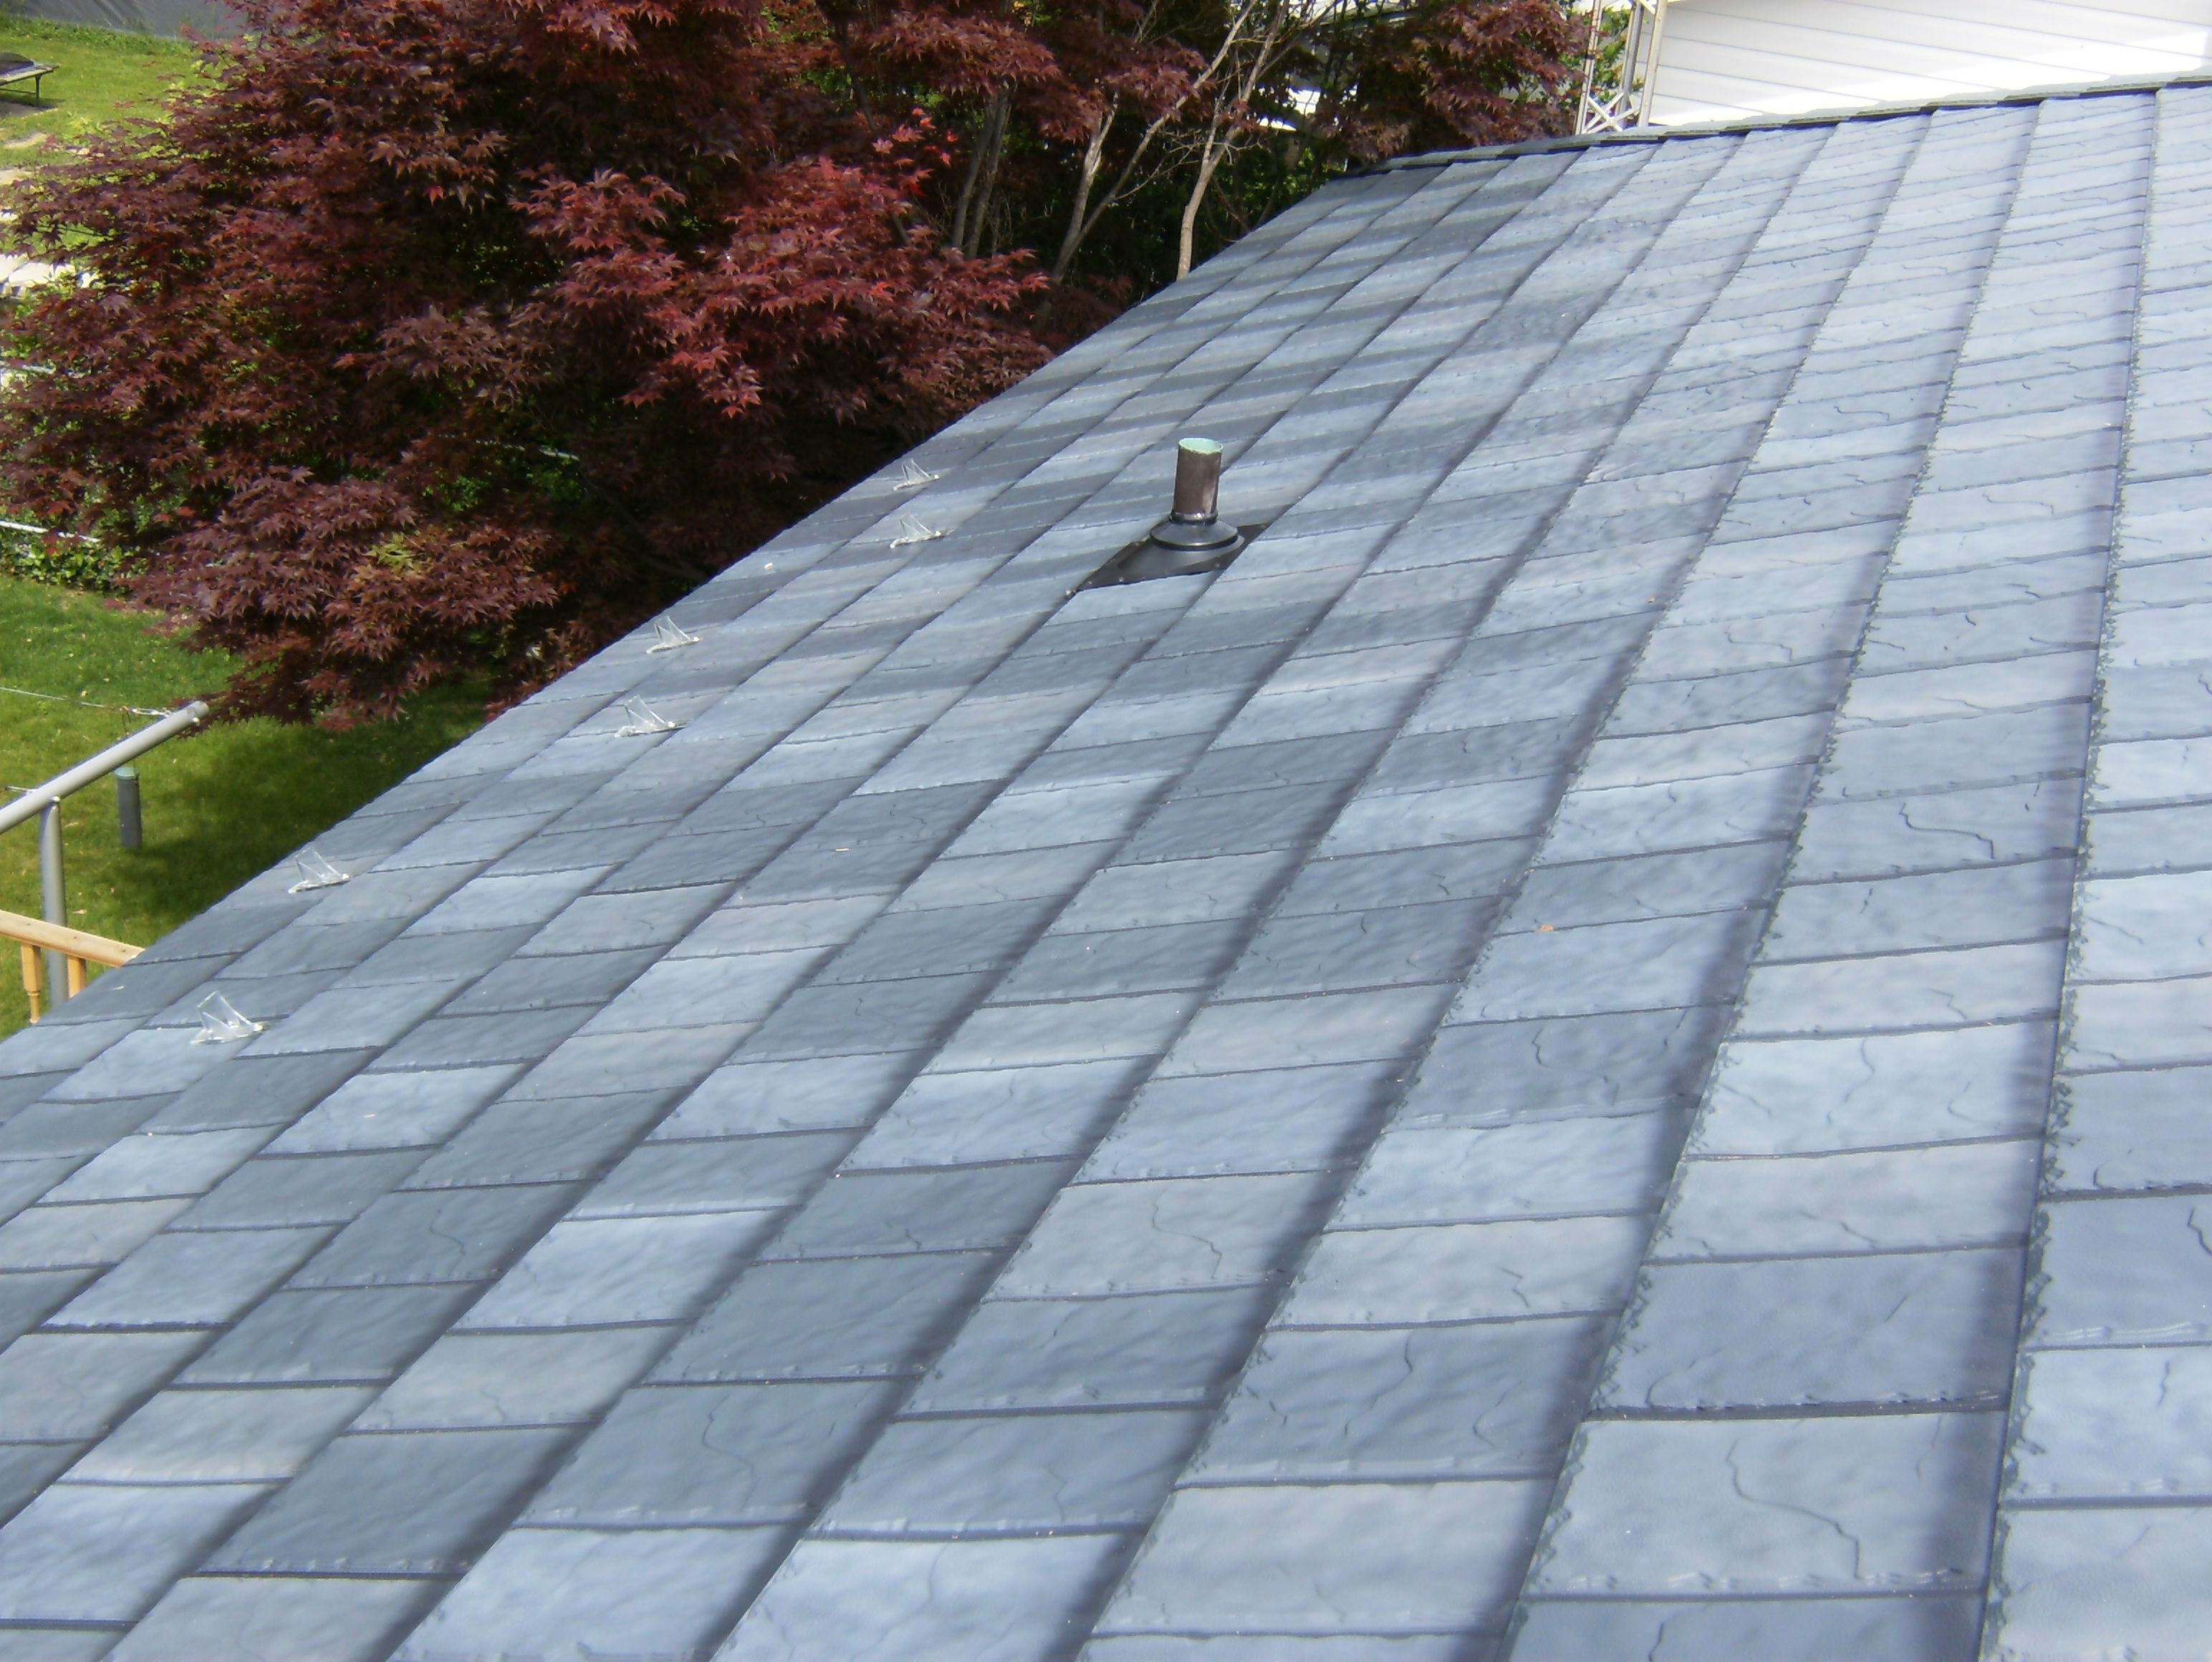 Interlocking Metal Roofing Is Quickly Replacing Old Asphalt Because Of Its Durability And Many Other Eco Benefits Http Www Finalroof Com On Metal Dak